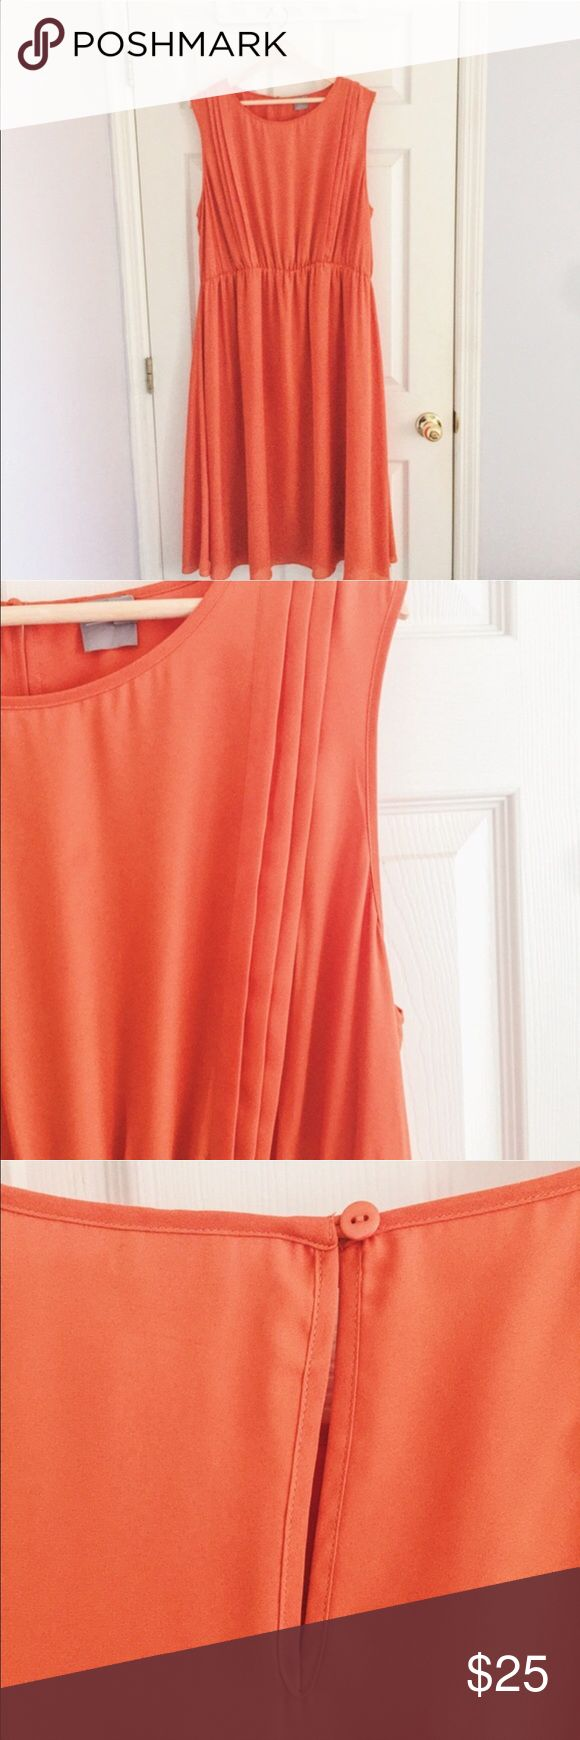 """ASOS Sleeveless Dress w/ Pleat Detail Beautiful orange chiffon dress featuring pleat detail near sleeve. Lightly worn. Does have stain near left sleeve (shown as accurately as possible in fourth photo; stain is actually blue but not very noticeable). Price takes into account the slight stain, but MAKE ME AN OFFER!!  ✧ About 46"""" in length  ✧ Fits true to size  ✧ Elasticized waist   ✧ Perfect light weight, airy summer dress   ✧ Machine washable and line dry ASOS Curve Dresses Midi"""